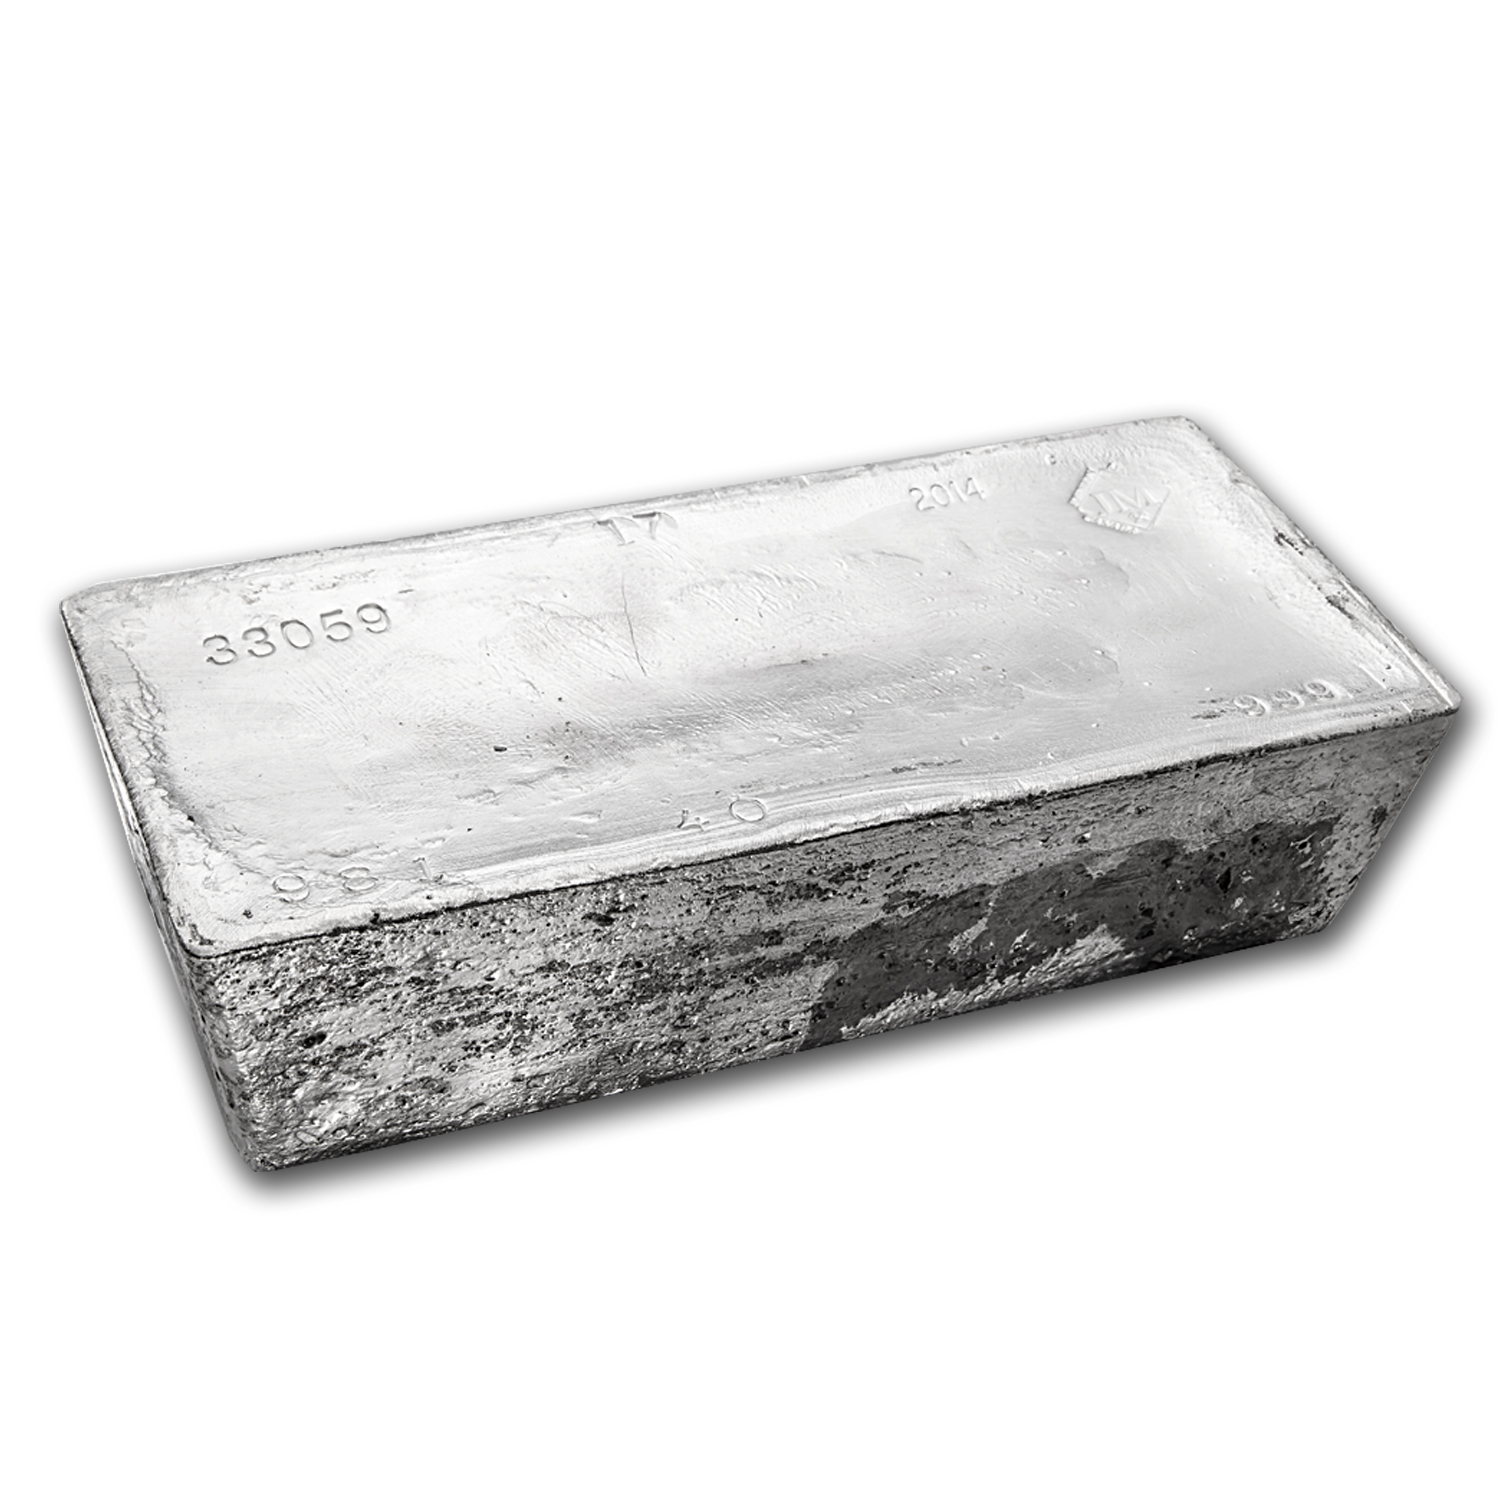 957.80 oz Silver Bar - Johnson Matthey